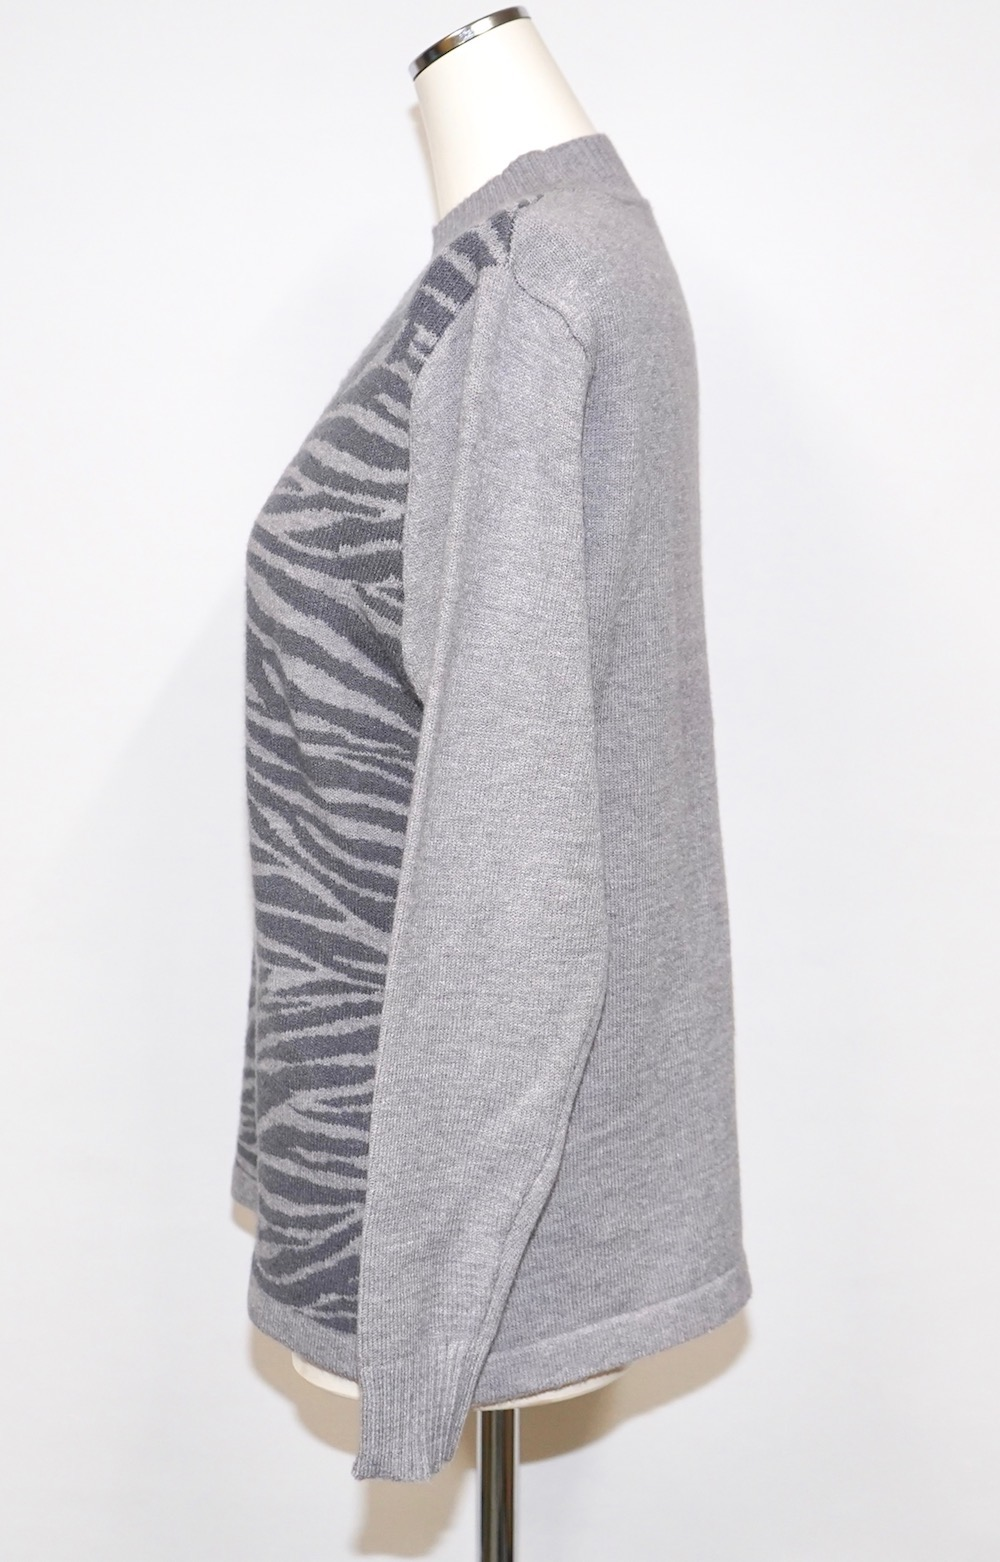 Zebra Pattern Mock Neck Knit Sweater (grey)